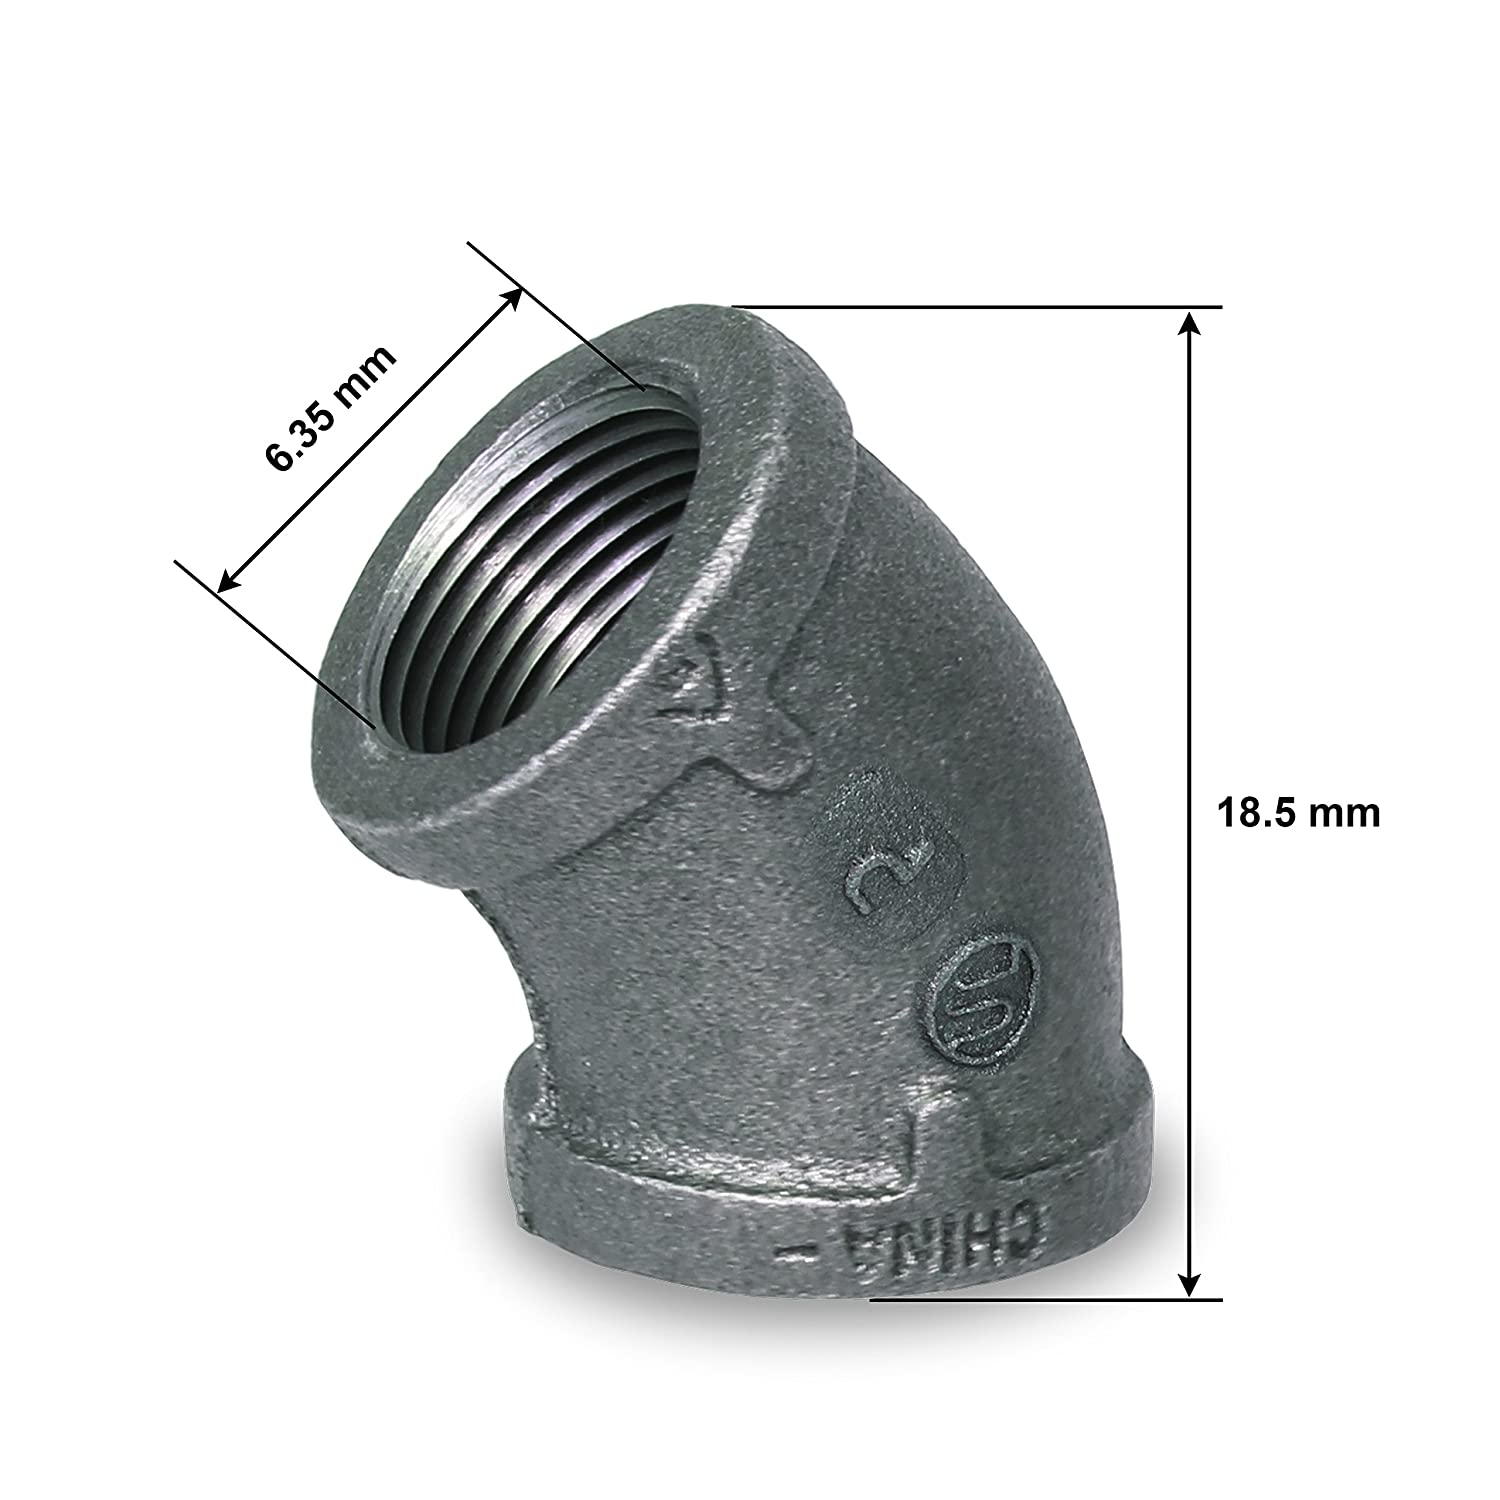 Everflow Supplies BMFF0014 1//4 45 Degree Malleable Iron Elbow Fitting for High Pressures with Female Thread Connects and Black Finish